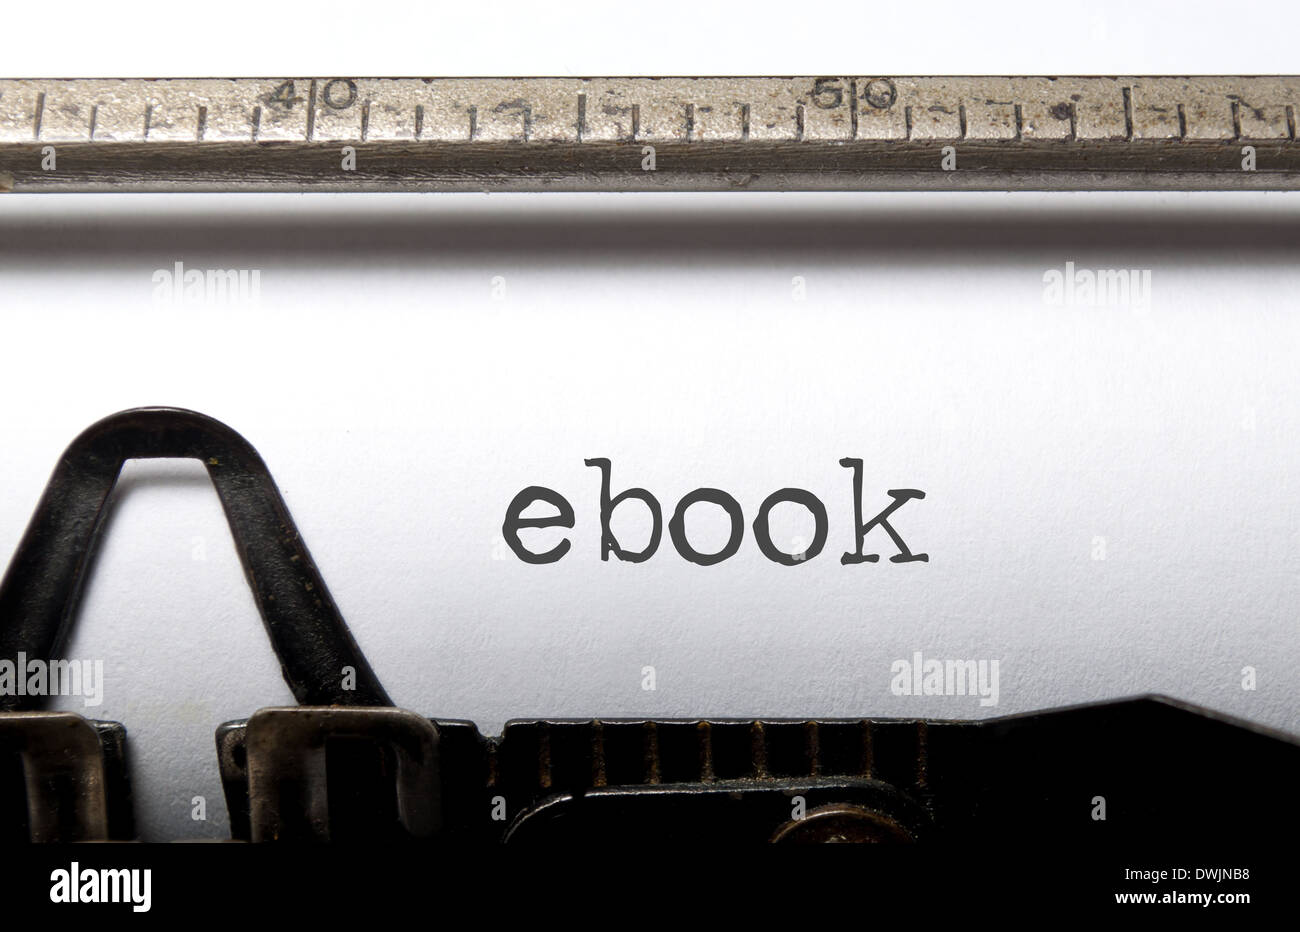 Ebook - Stock Image